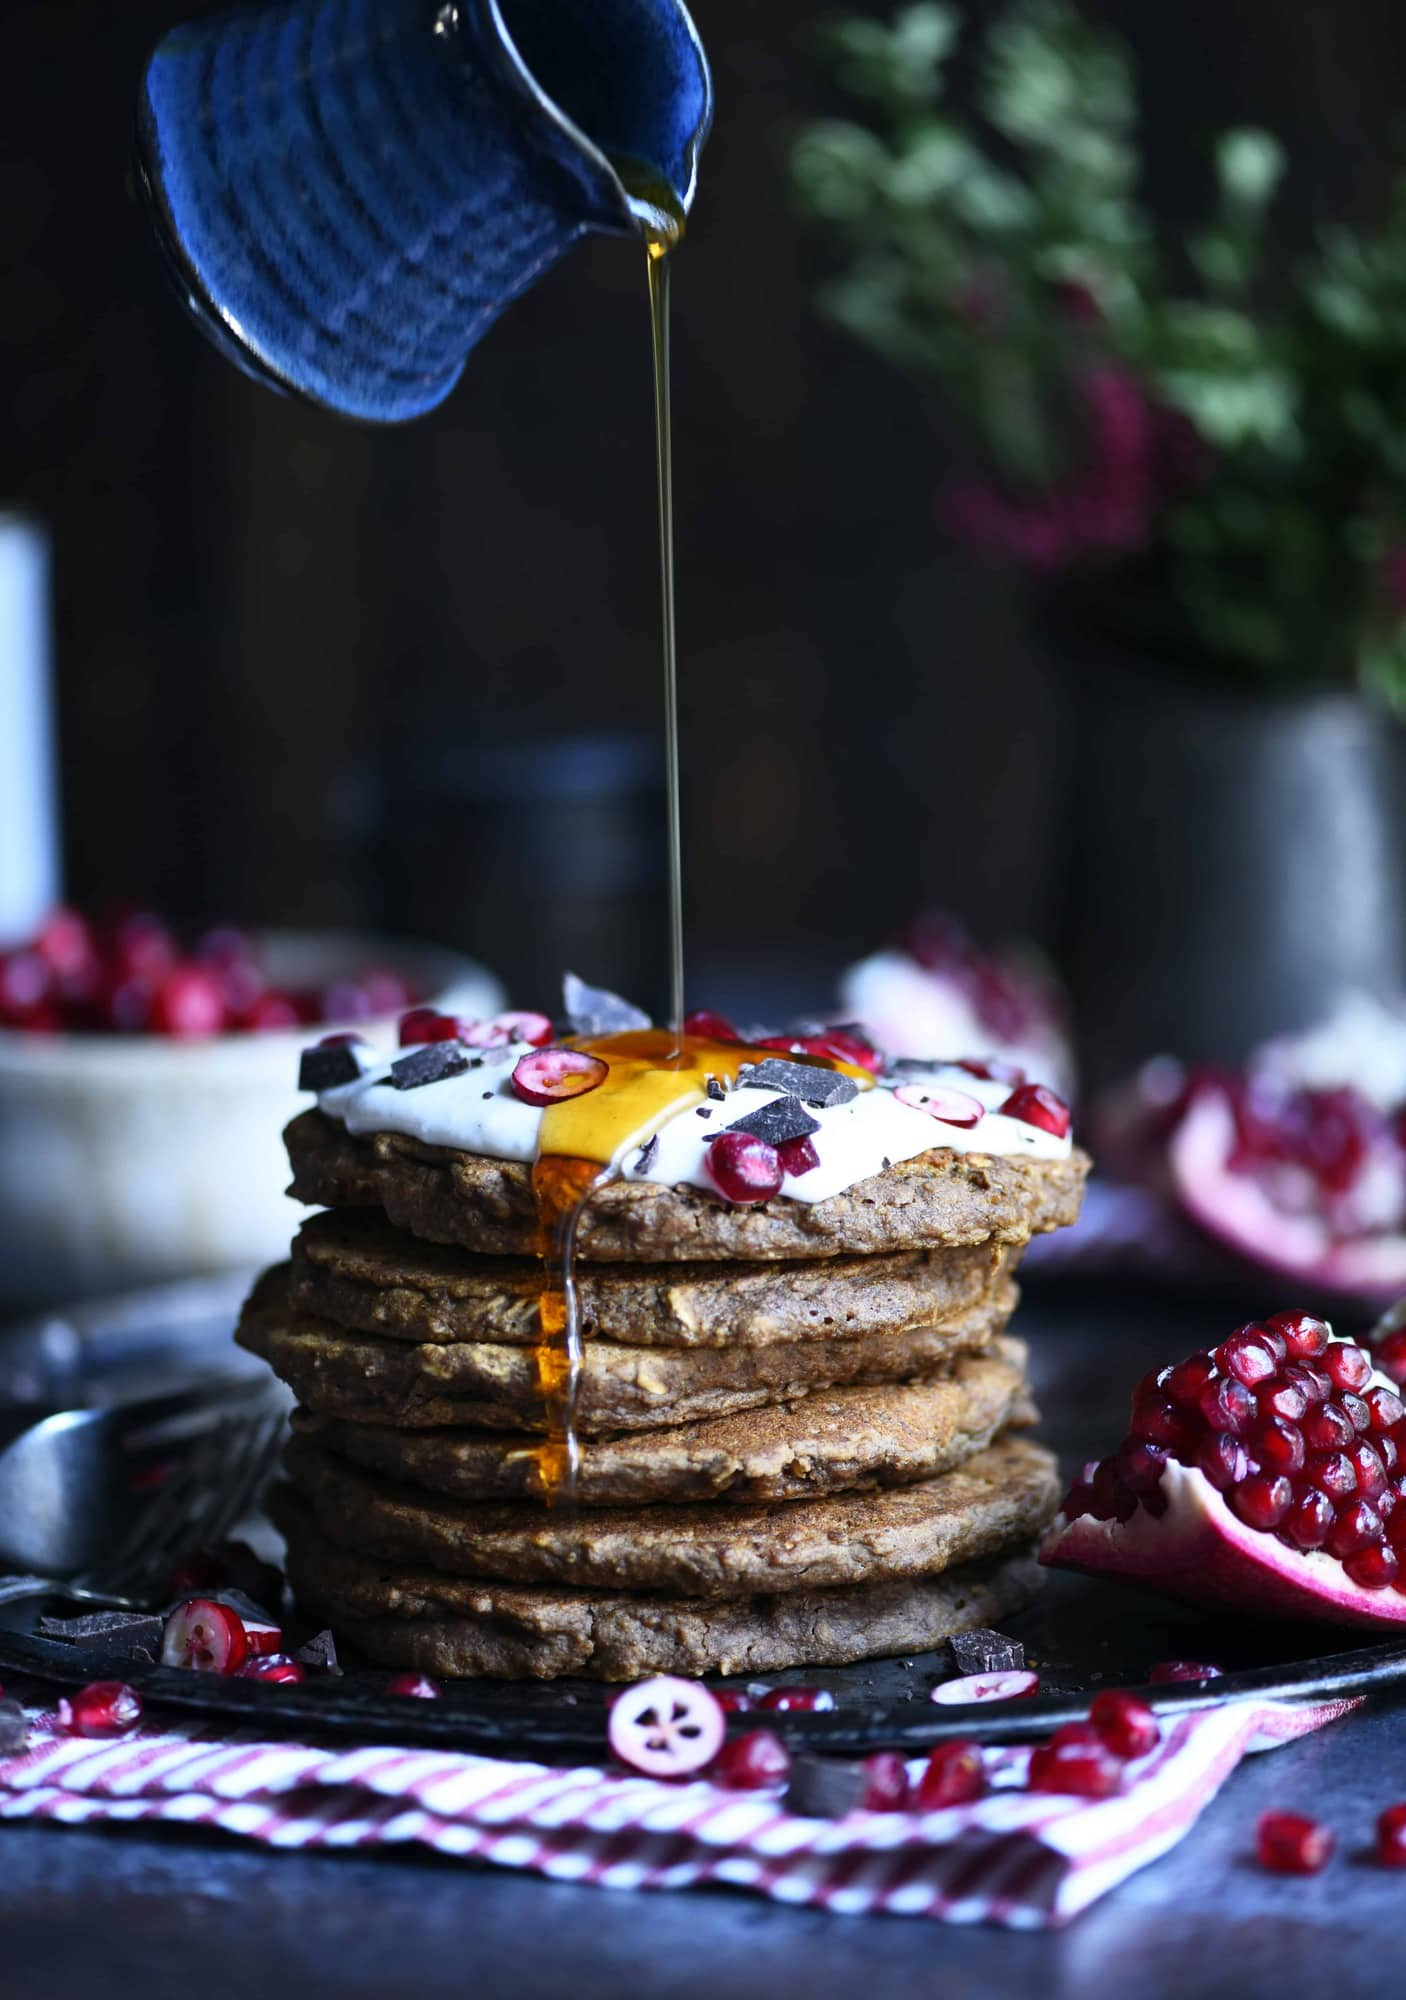 Pouring maple syrup onto a stack of gingerbread oatmeal pancakes with a dark background